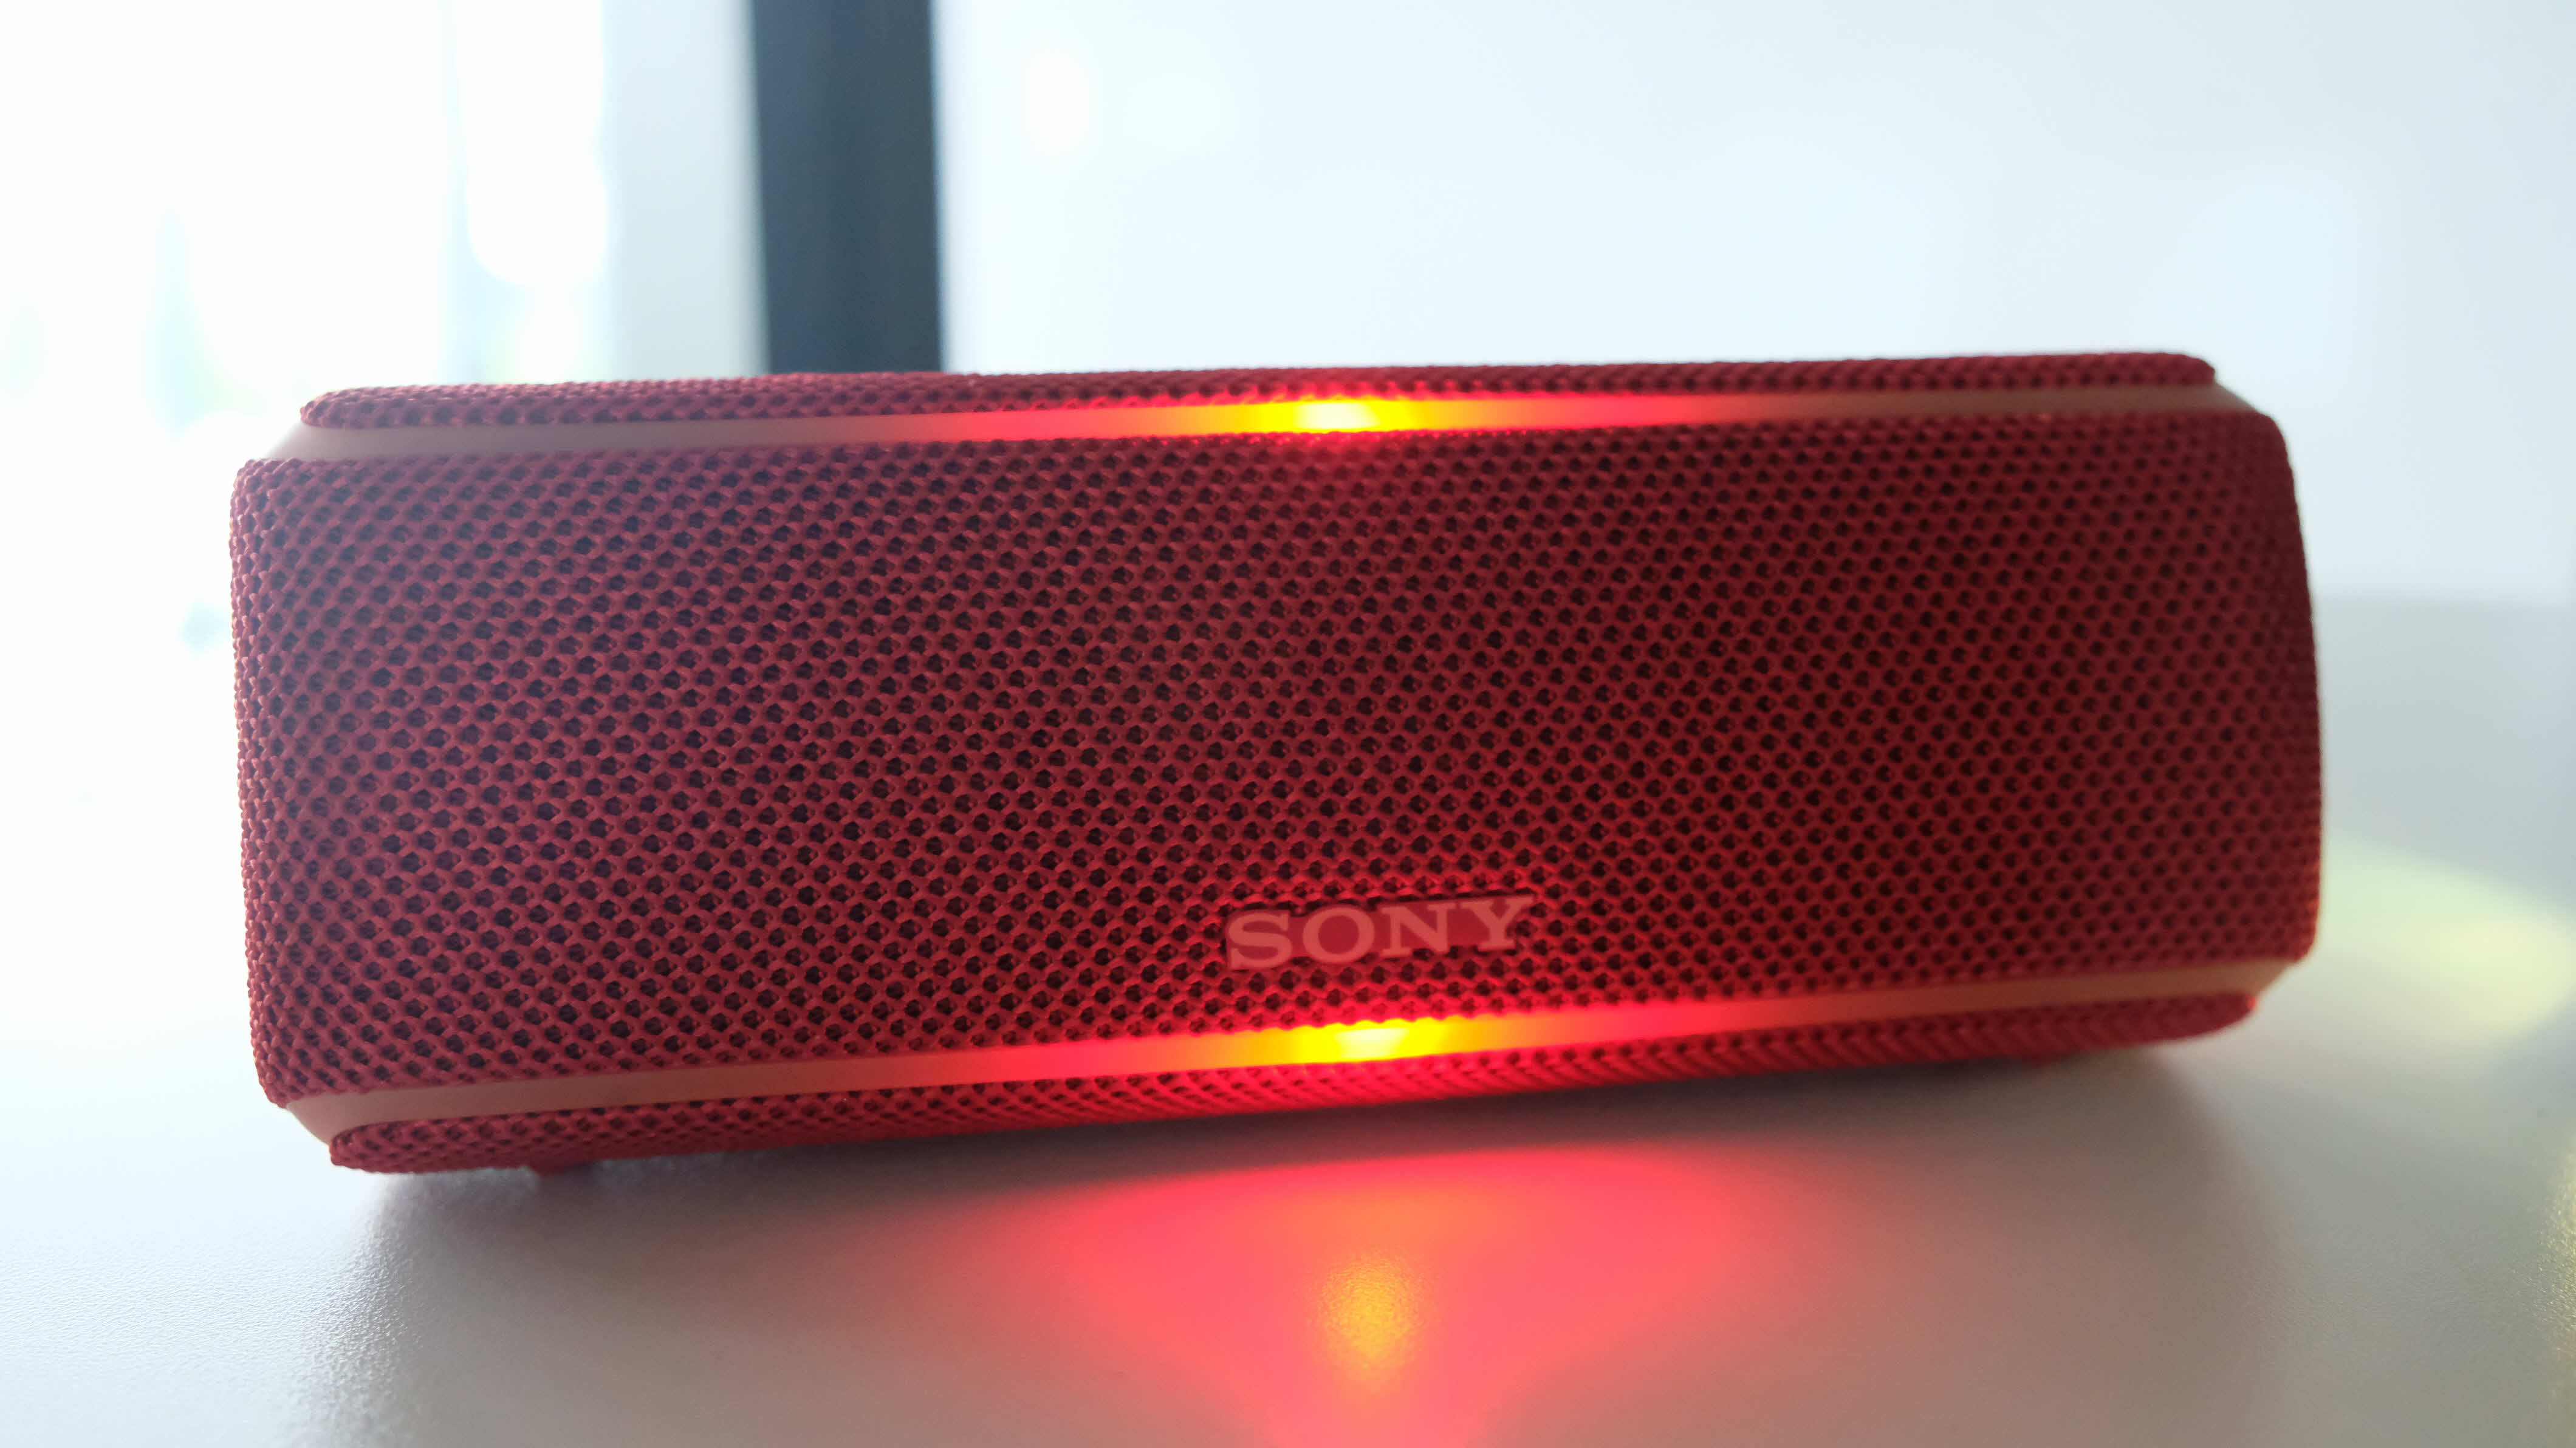 Sony Srs Xb21 Sony Srs Xb31 Blutooth Speaker Review Advertorial 016